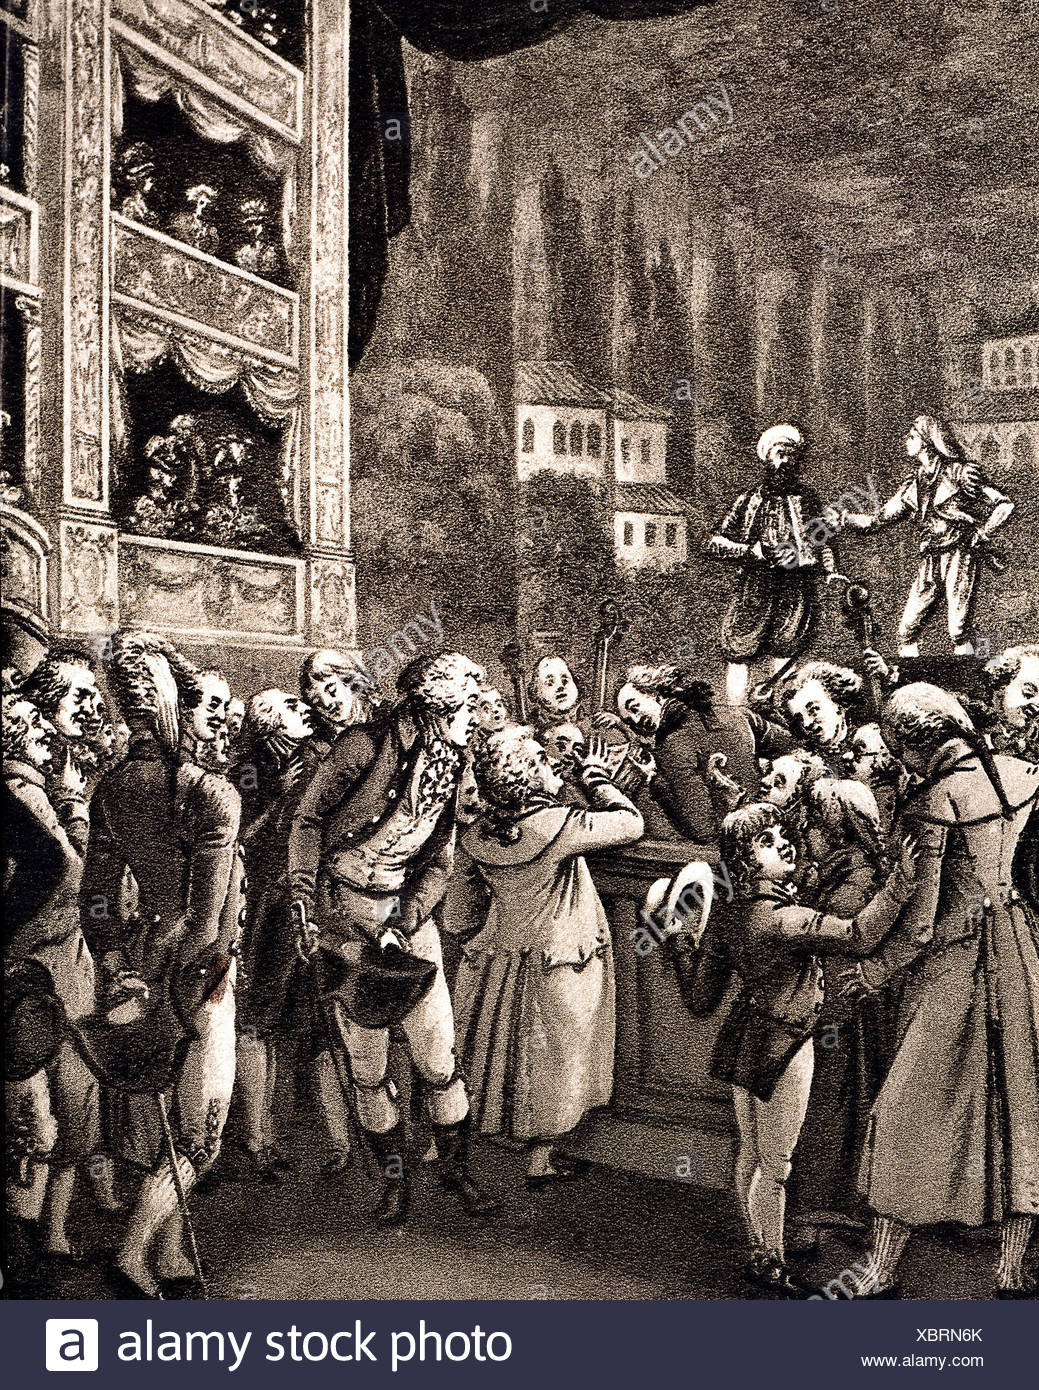 Mozart, Wolfgang Amadeus, 27.1.1756 - 5.12.1791, Austrian musician, composer, visiting the Berlin Theatre, stage performance 'The Abduction from the Seraglio', later image, , Additional-Rights-Clearances-NA - Stock Image